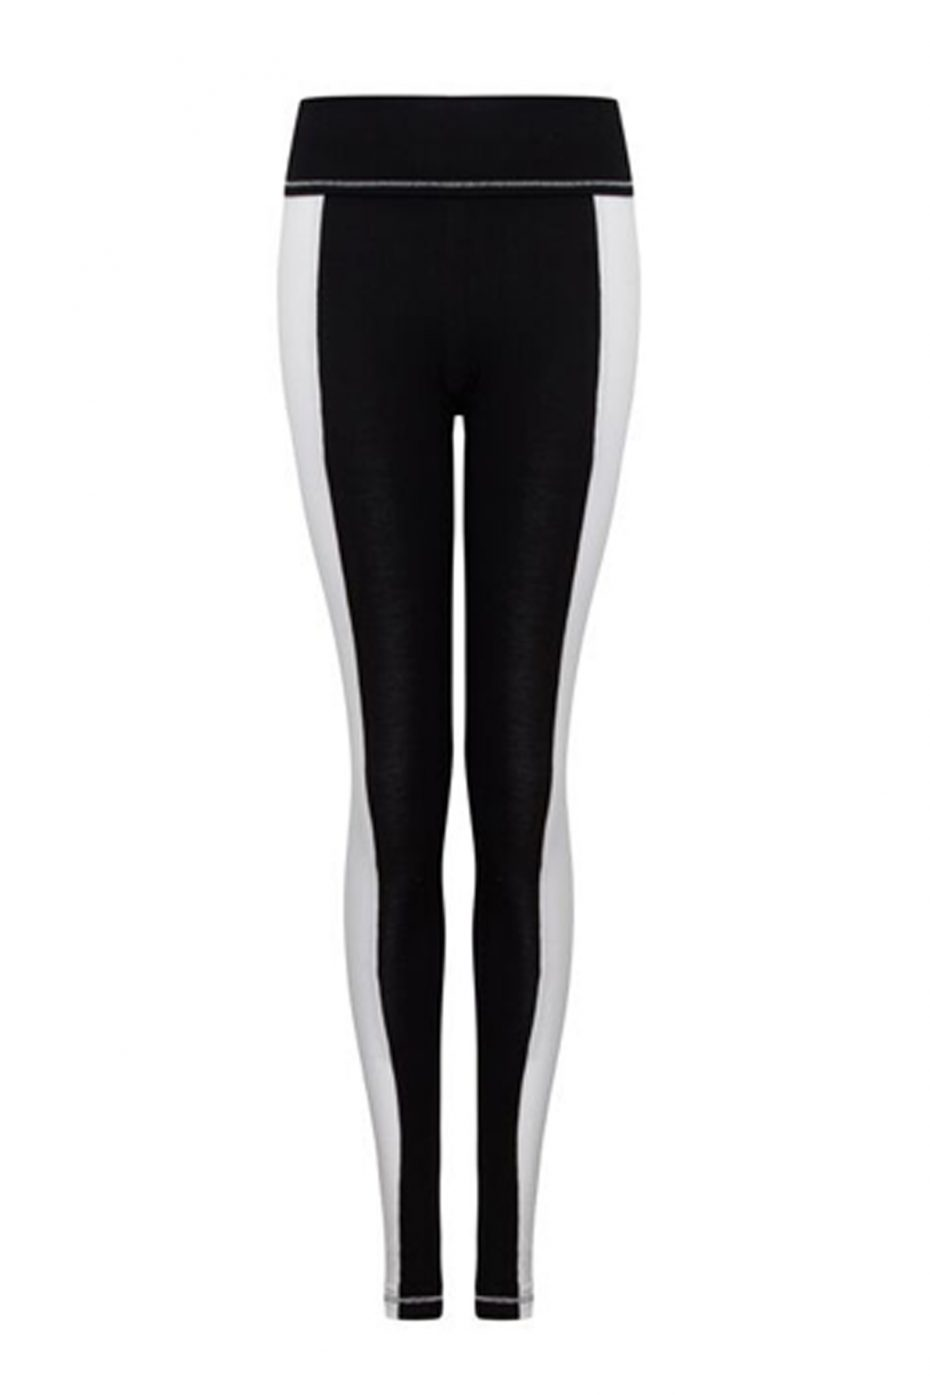 S'No Queen StripeTease leggings Black & White-406